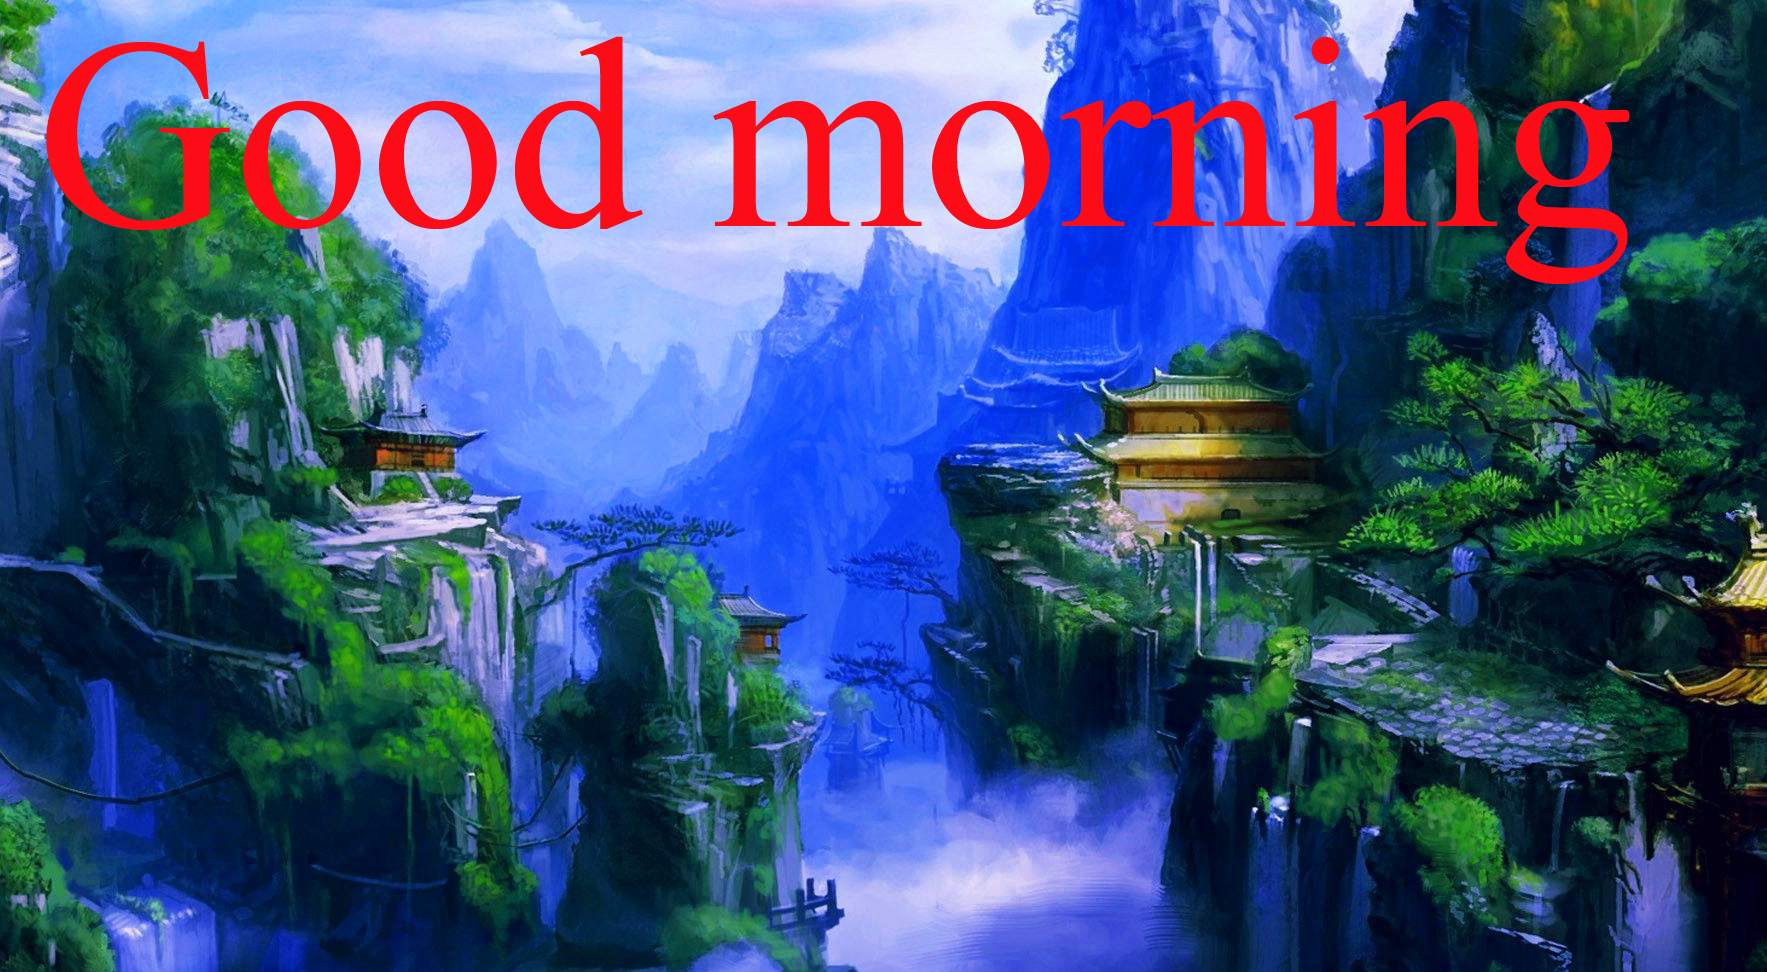 Good Morning and Good Luck Wishes For Student Images Photo Wallpaper HD Download